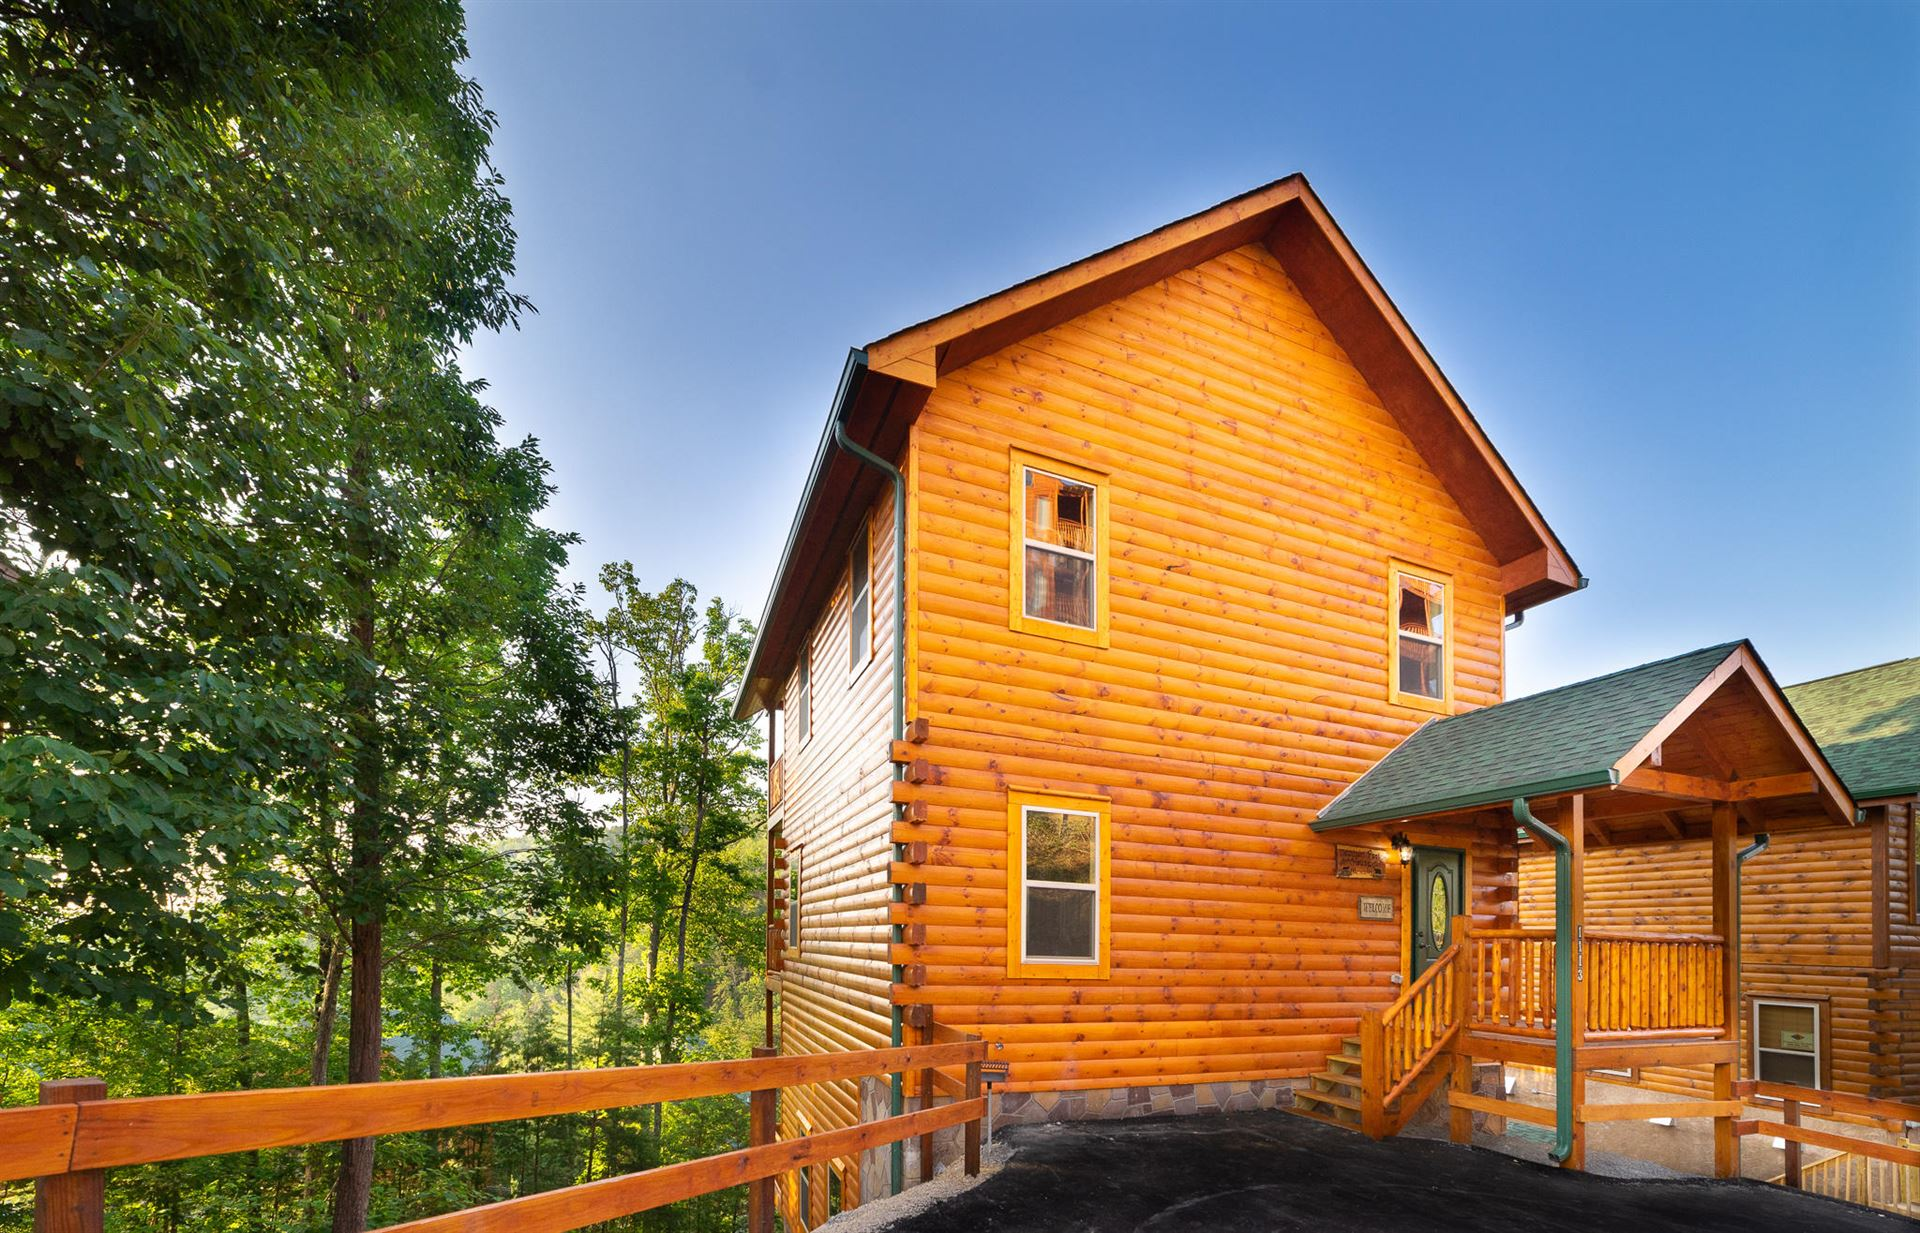 Photo of 1010 Timber Woods Dr, Sevierville, TN 37862 (MLS # 1139986)